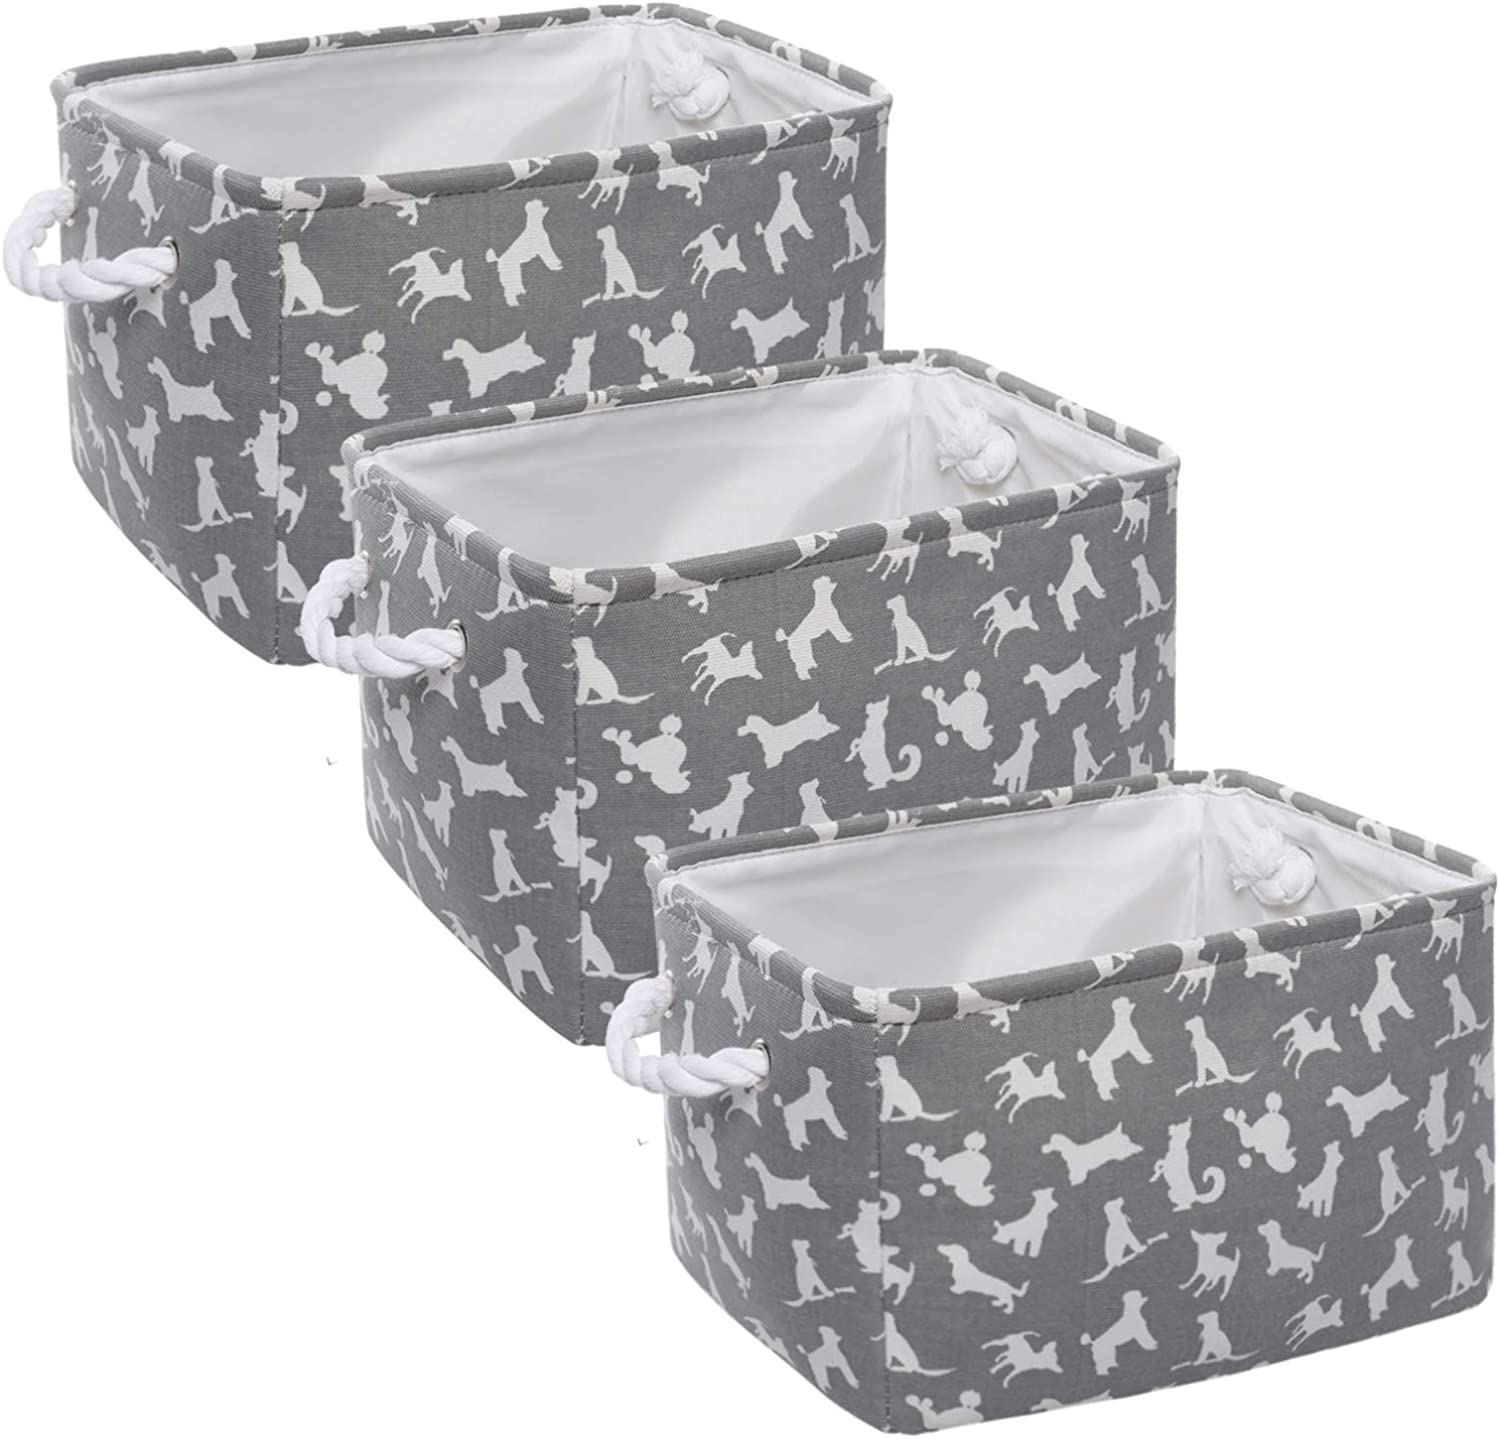 Max 57% OFF HOKEMP Large Cute Designs Animals Pattern Super Special SALE held 3-Pack Basket Storage